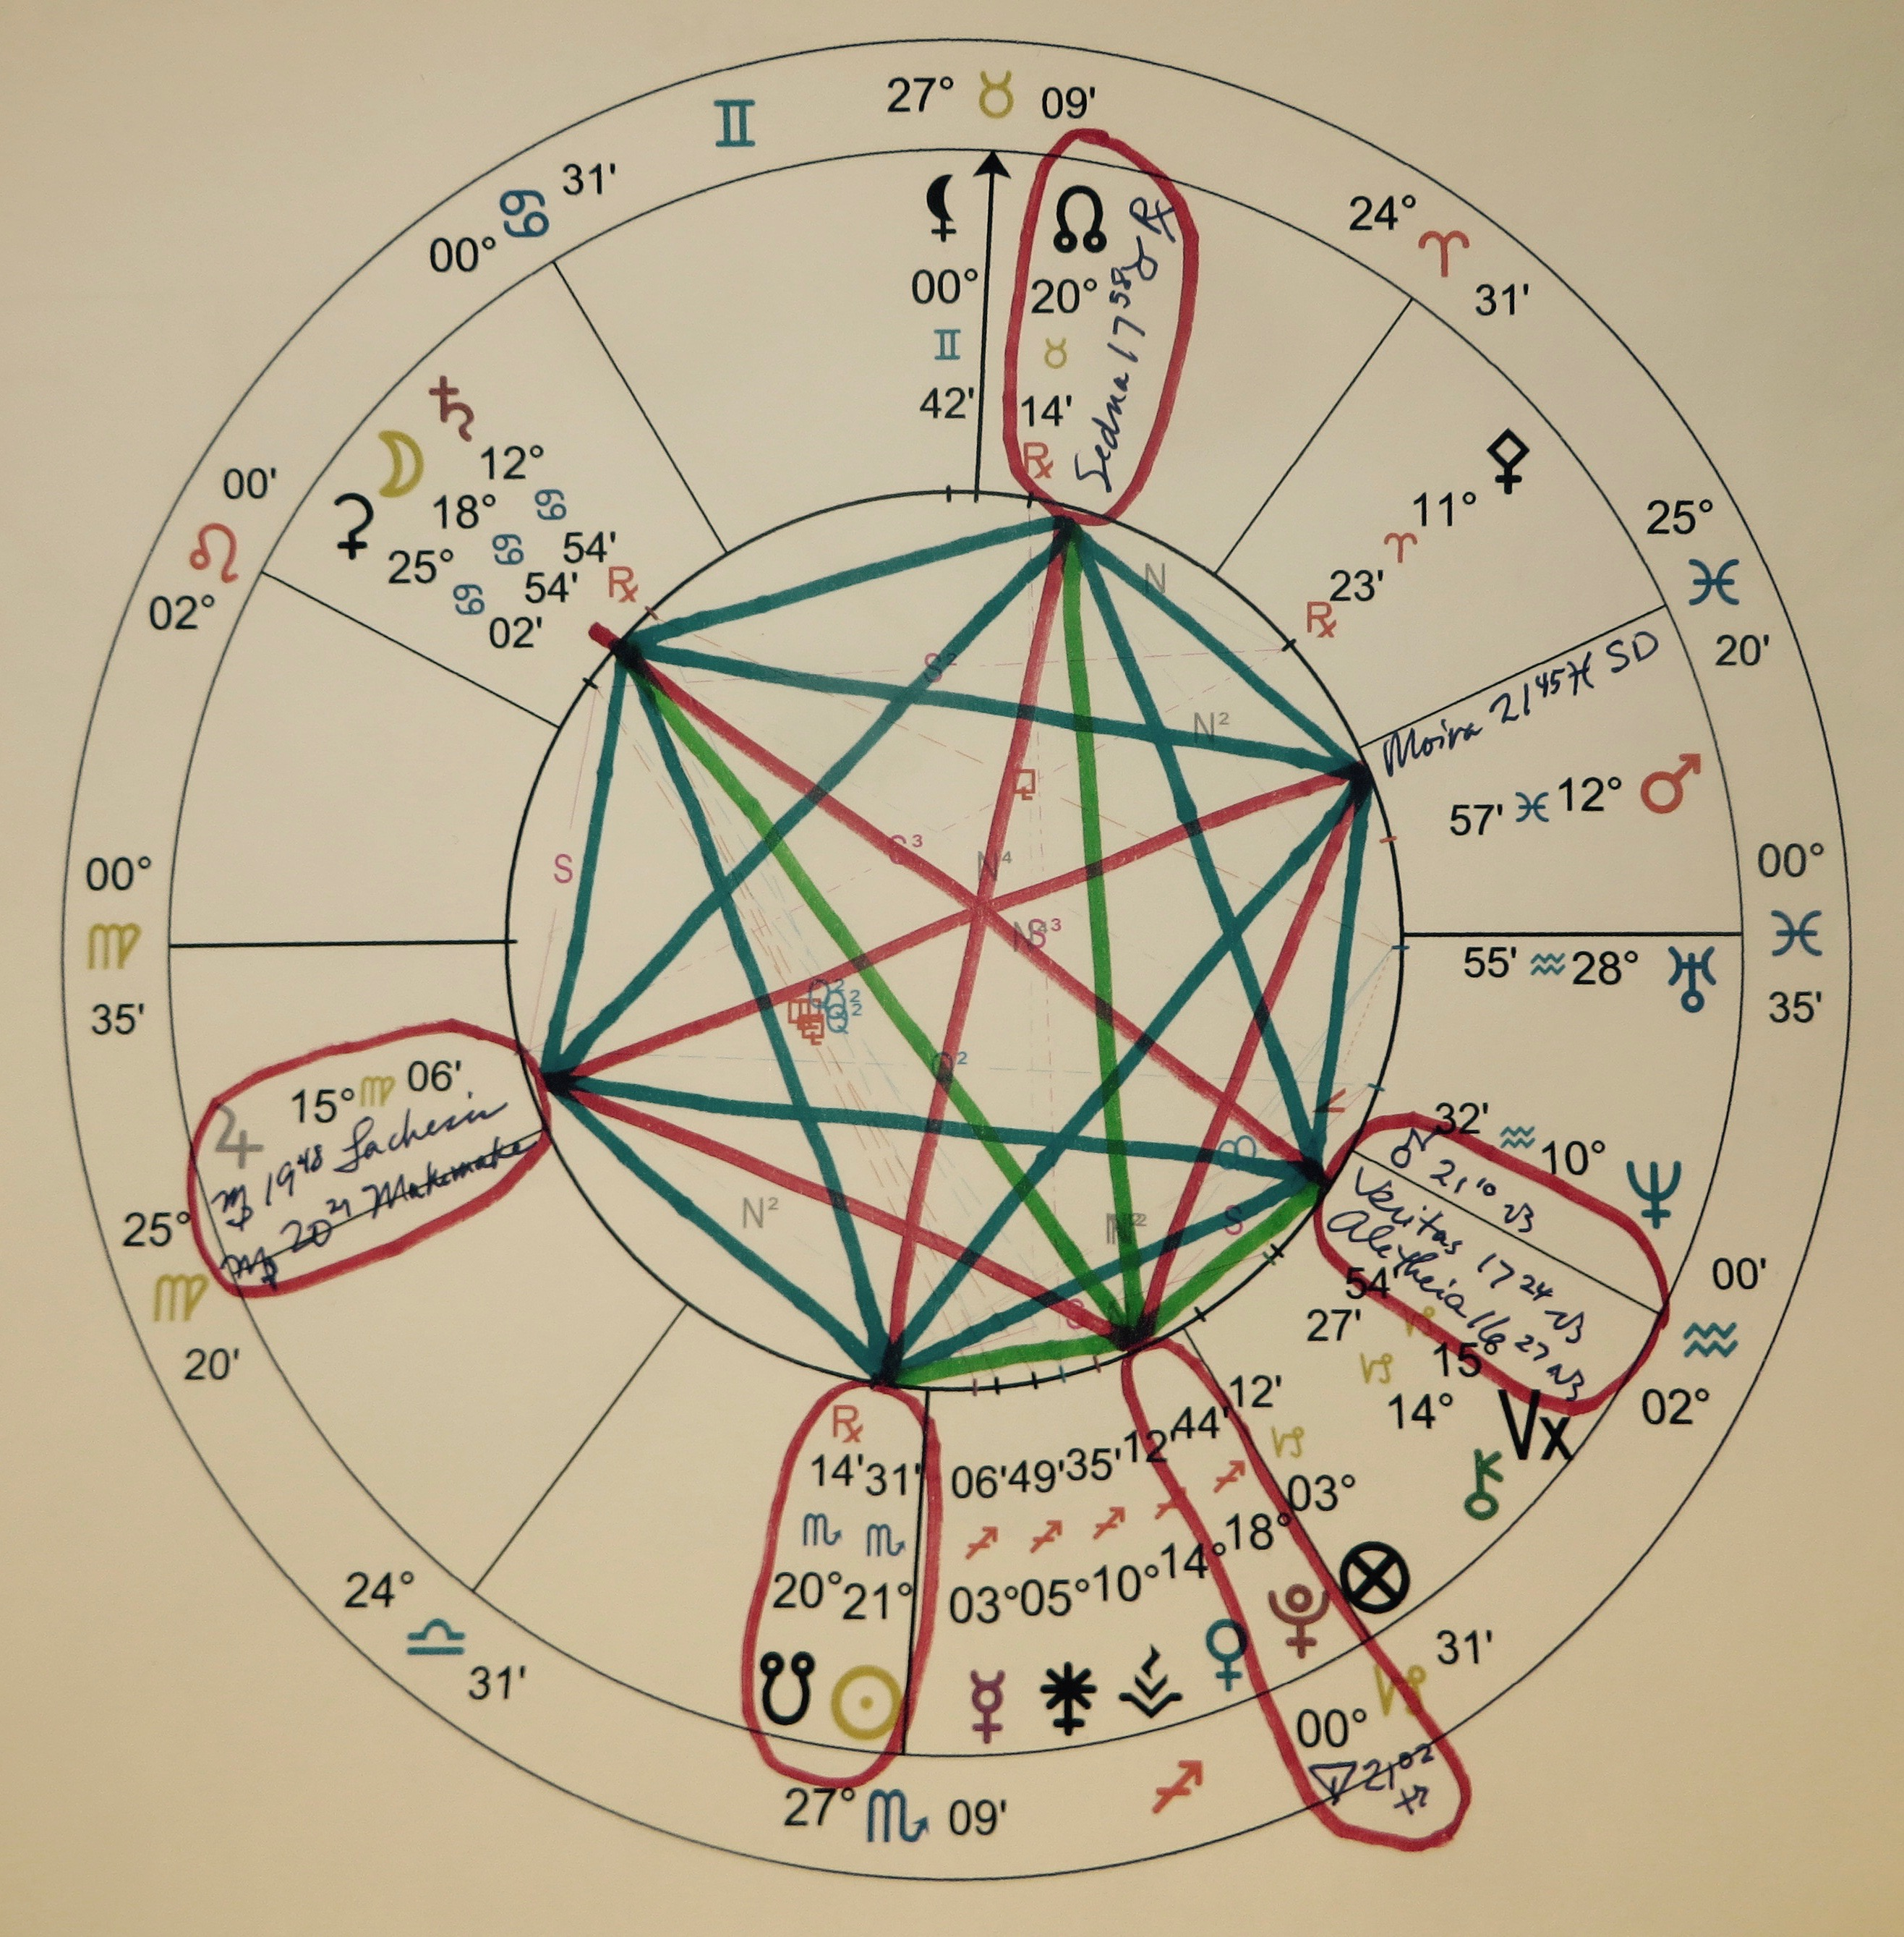 Planets in Astrology lessons 5 sedna, eris, meanlunarnode, pallas